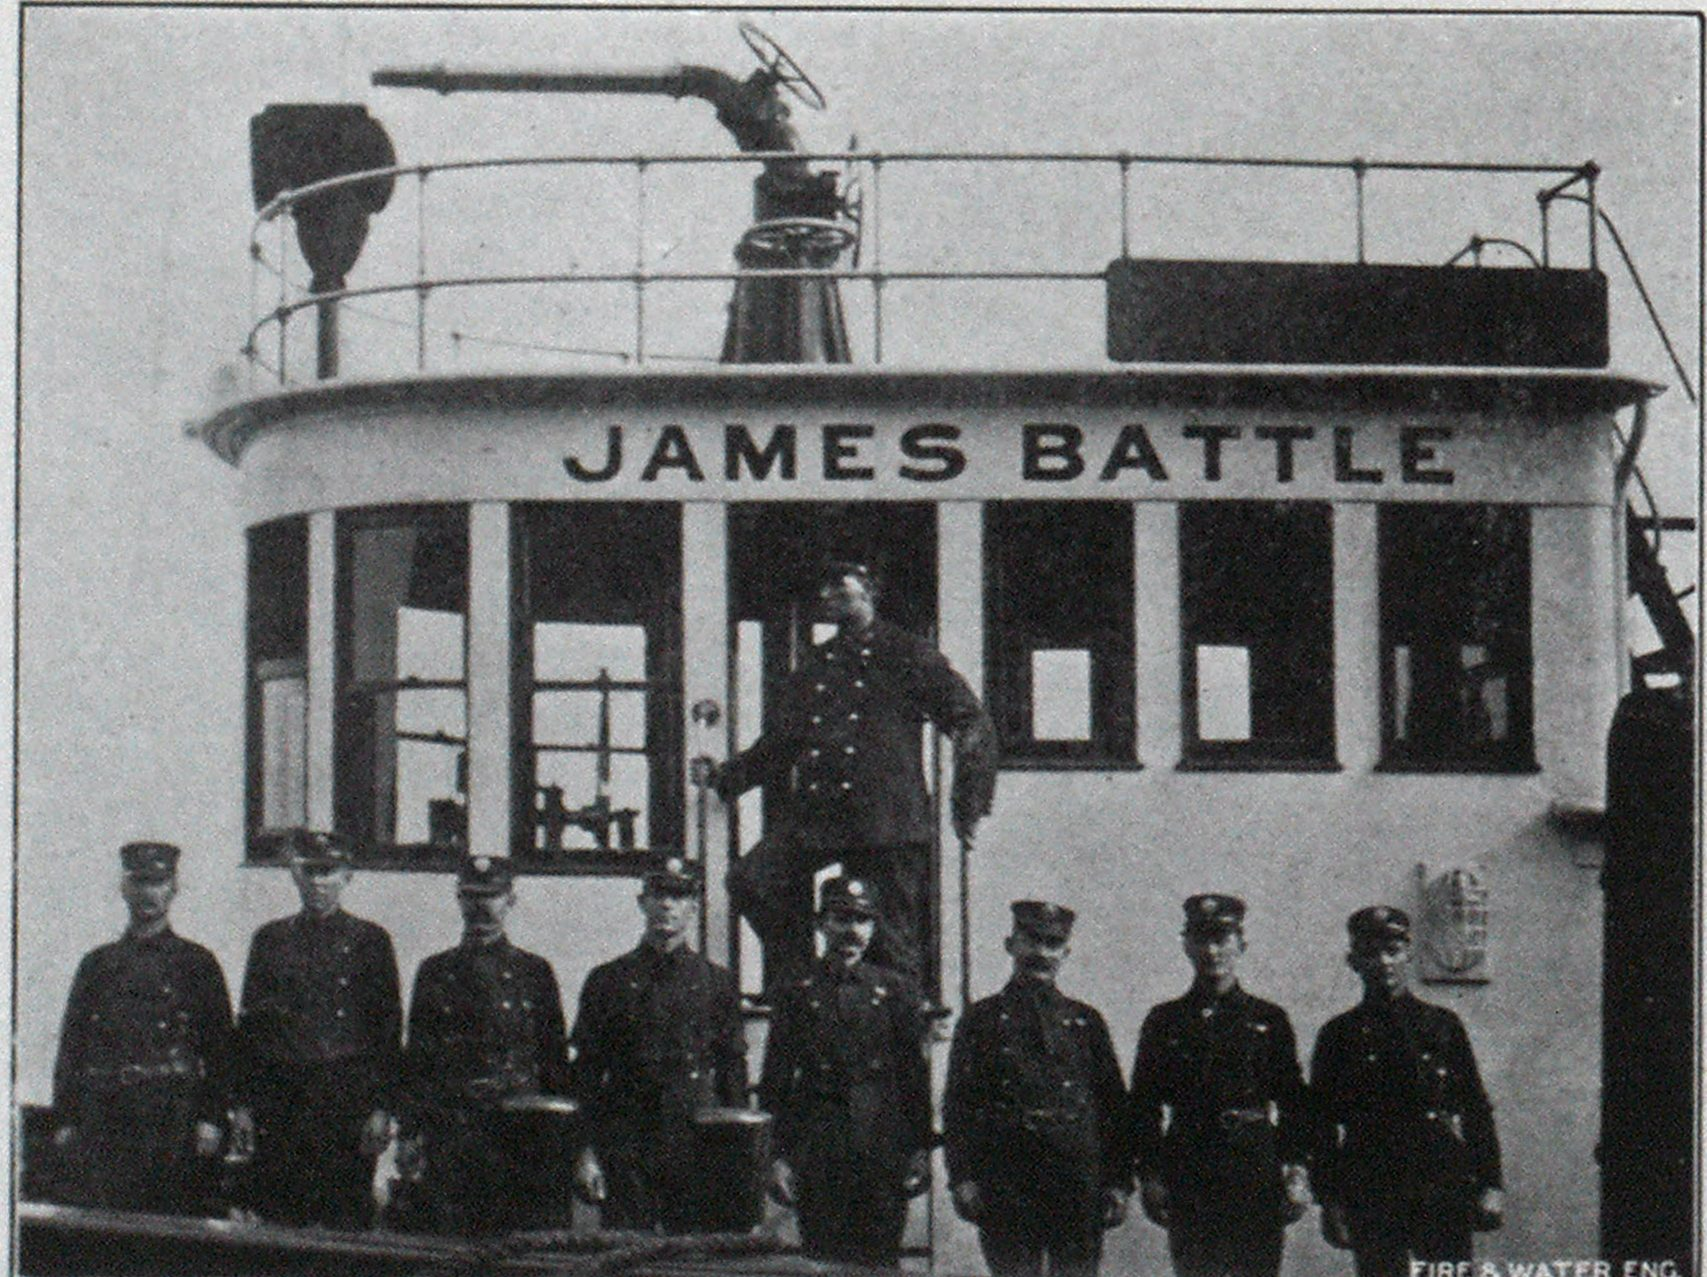 CREW OF THE JAMES BATTLE. From left to right: Capt. Morrison on steps; Lieut. T. J. Noves; G. F. Moore: F. Ponting; M. Keenoy, Cadet; E. Talbot, third officerl; H. L. McGowan; A. Roach and D. H. Carter.